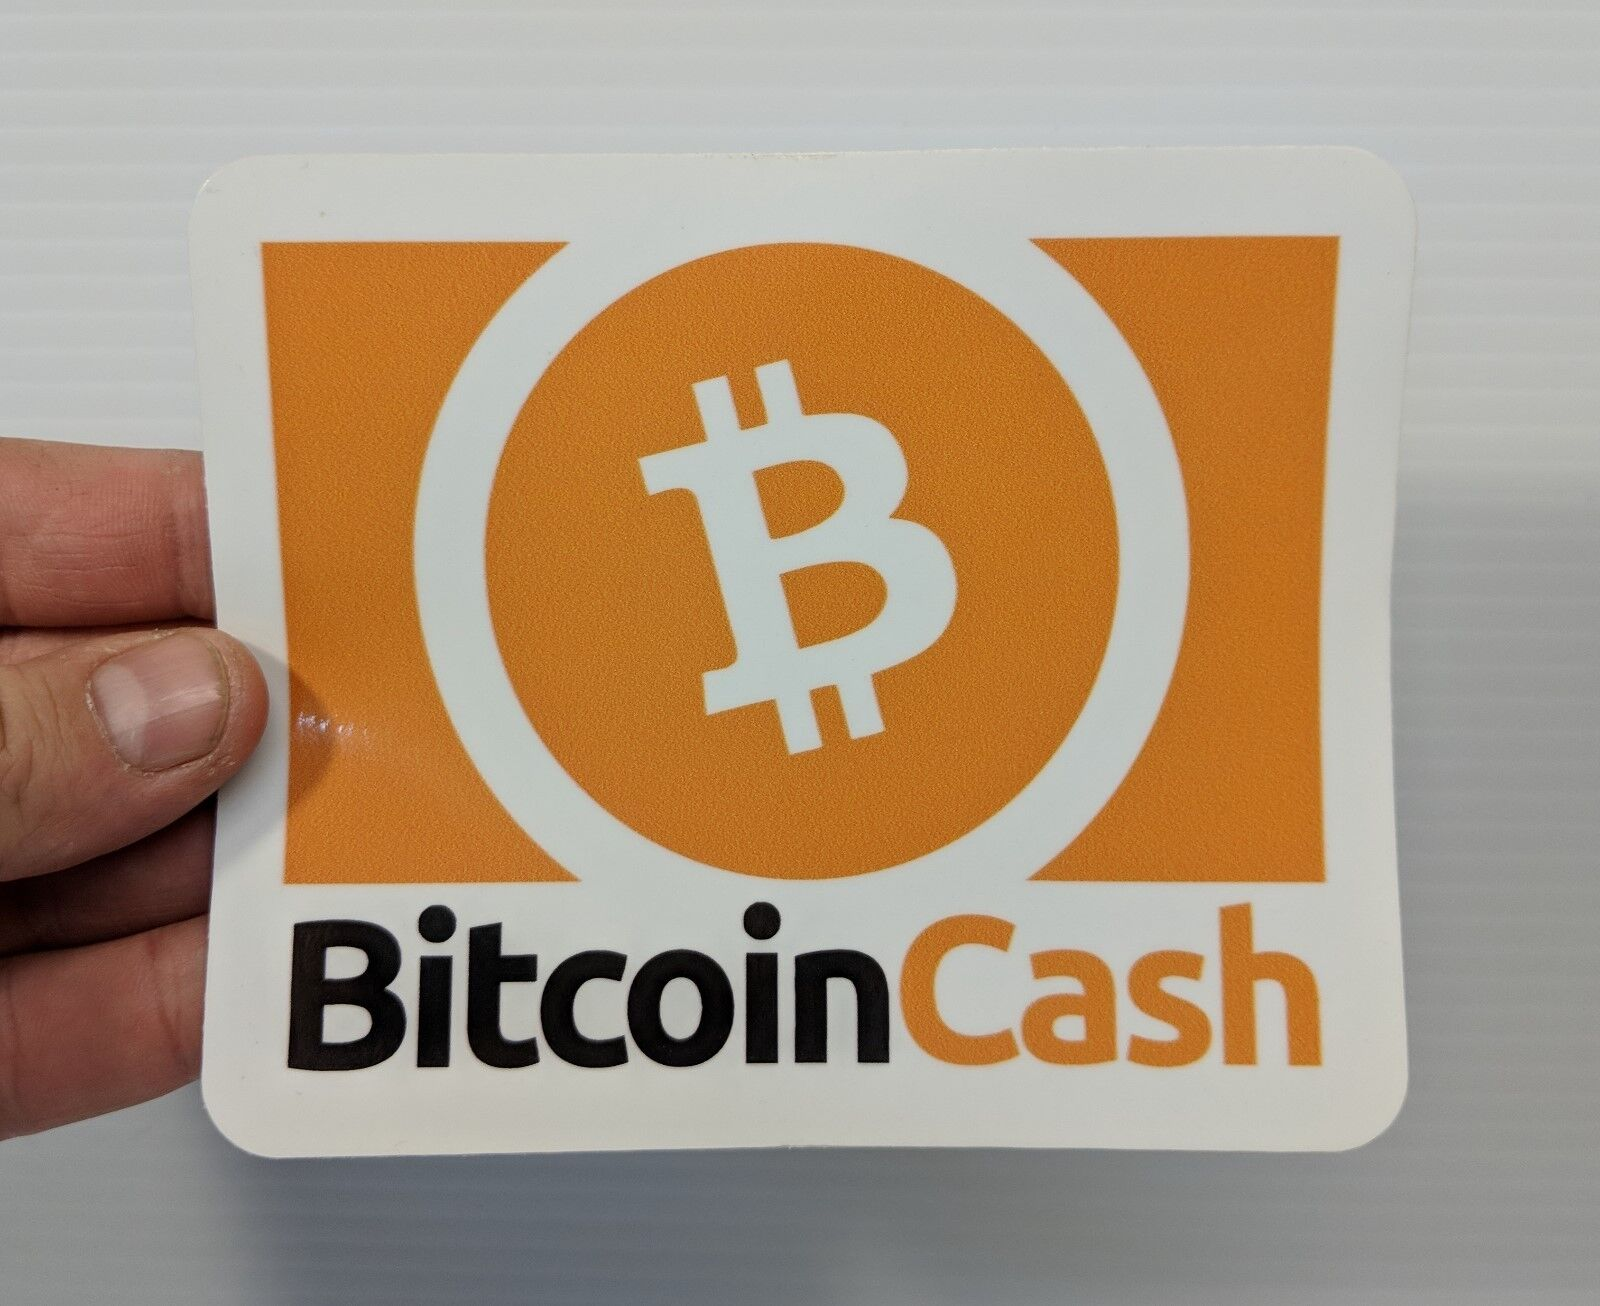 Bitcoin Cash High Quality Sticker for Laptops, Cars, Point of Purchase - Orange